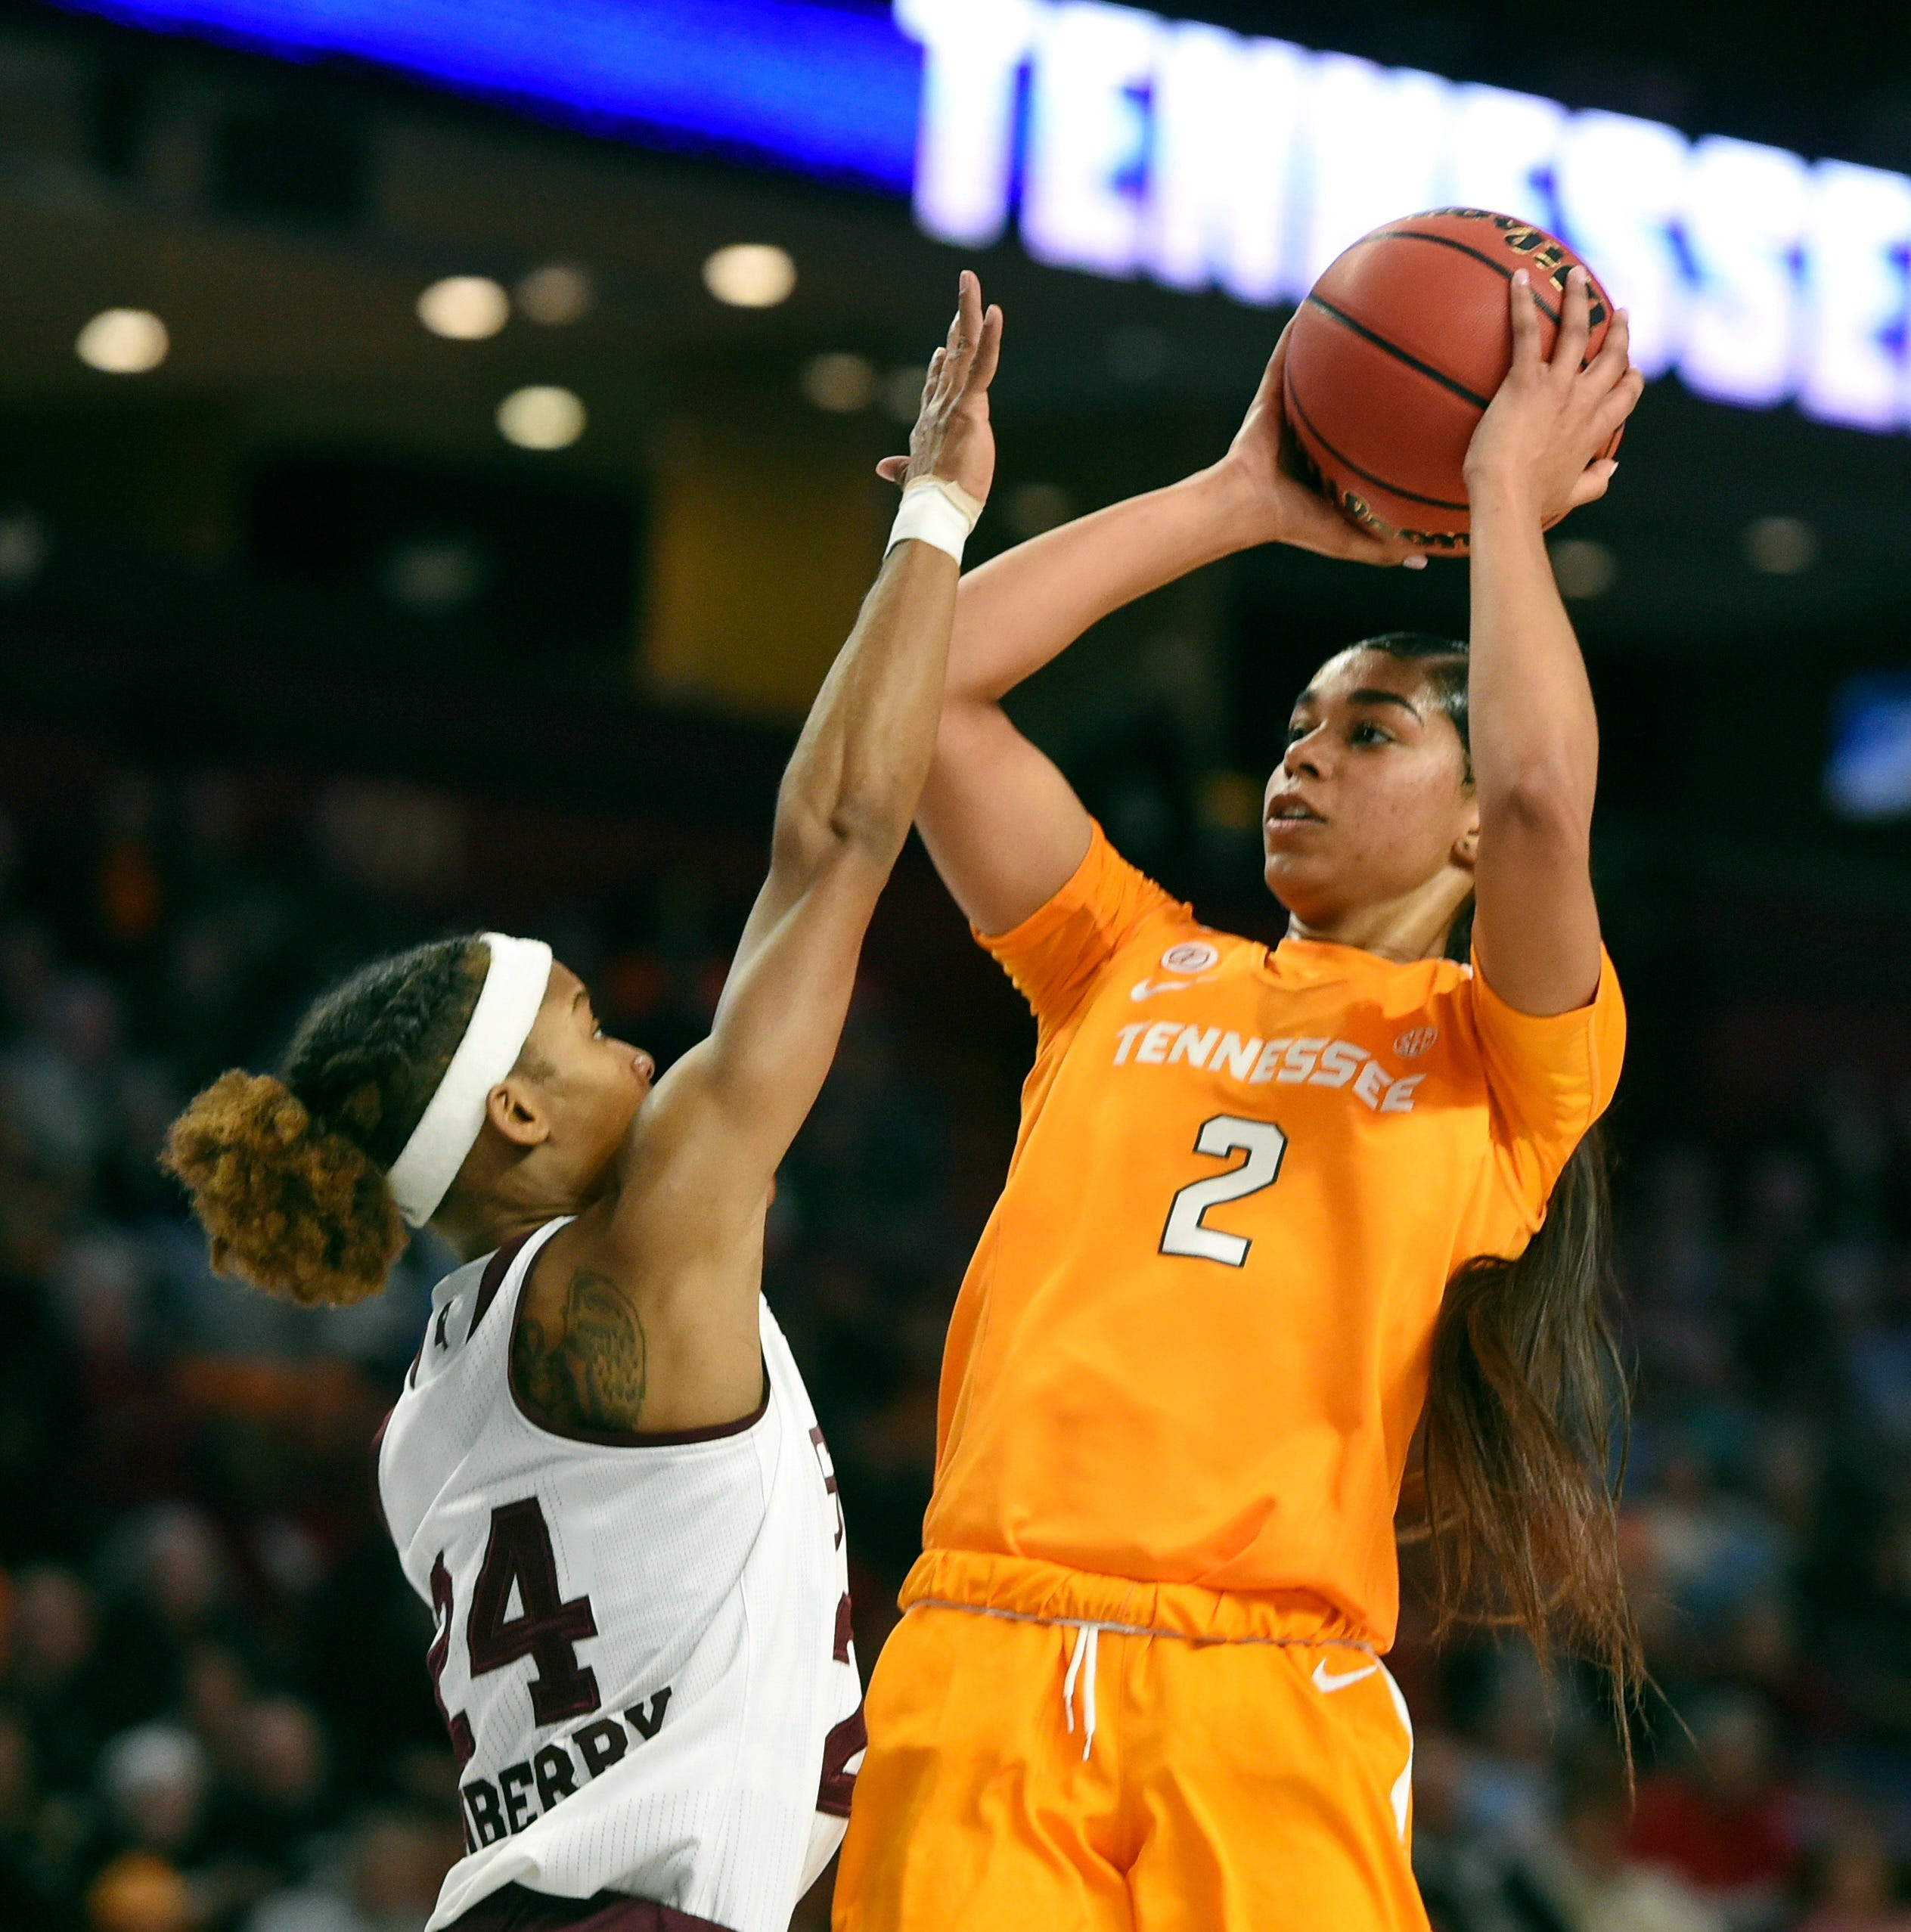 Evina Westbrook is reminder Lady Vols often fall short of UConn at point guard